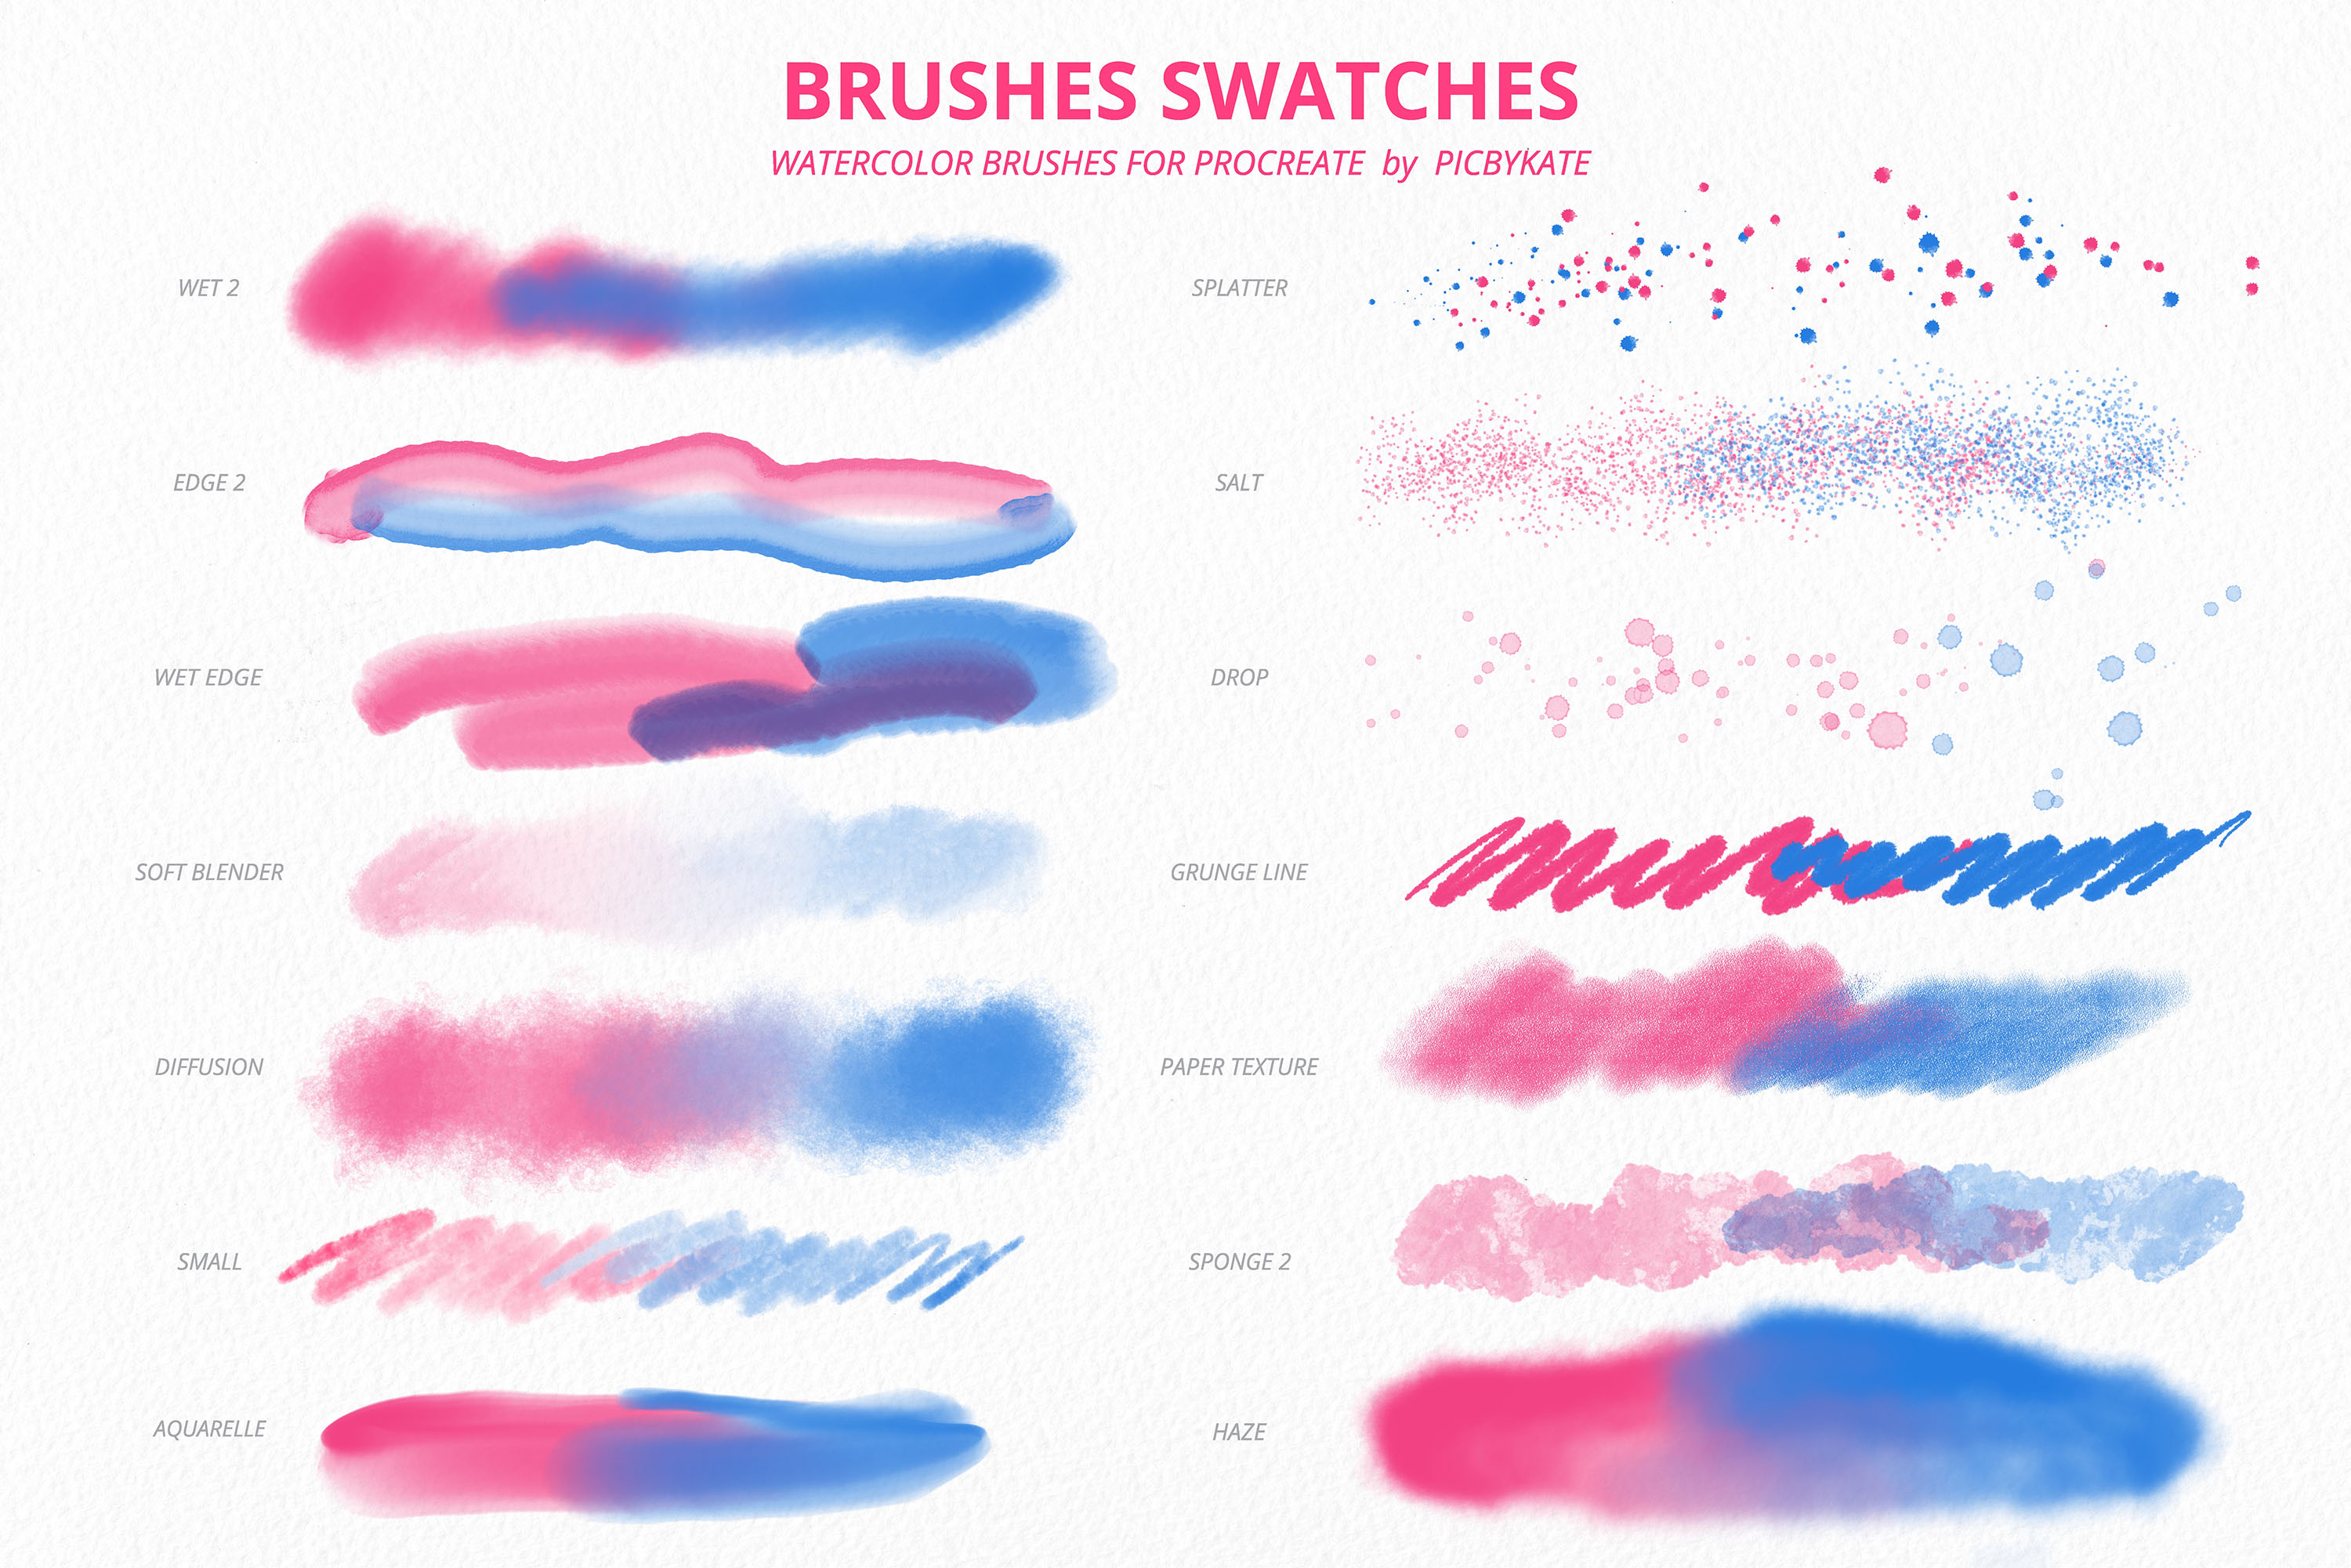 50 Procreate Watercolor Brushes - Design Cuts